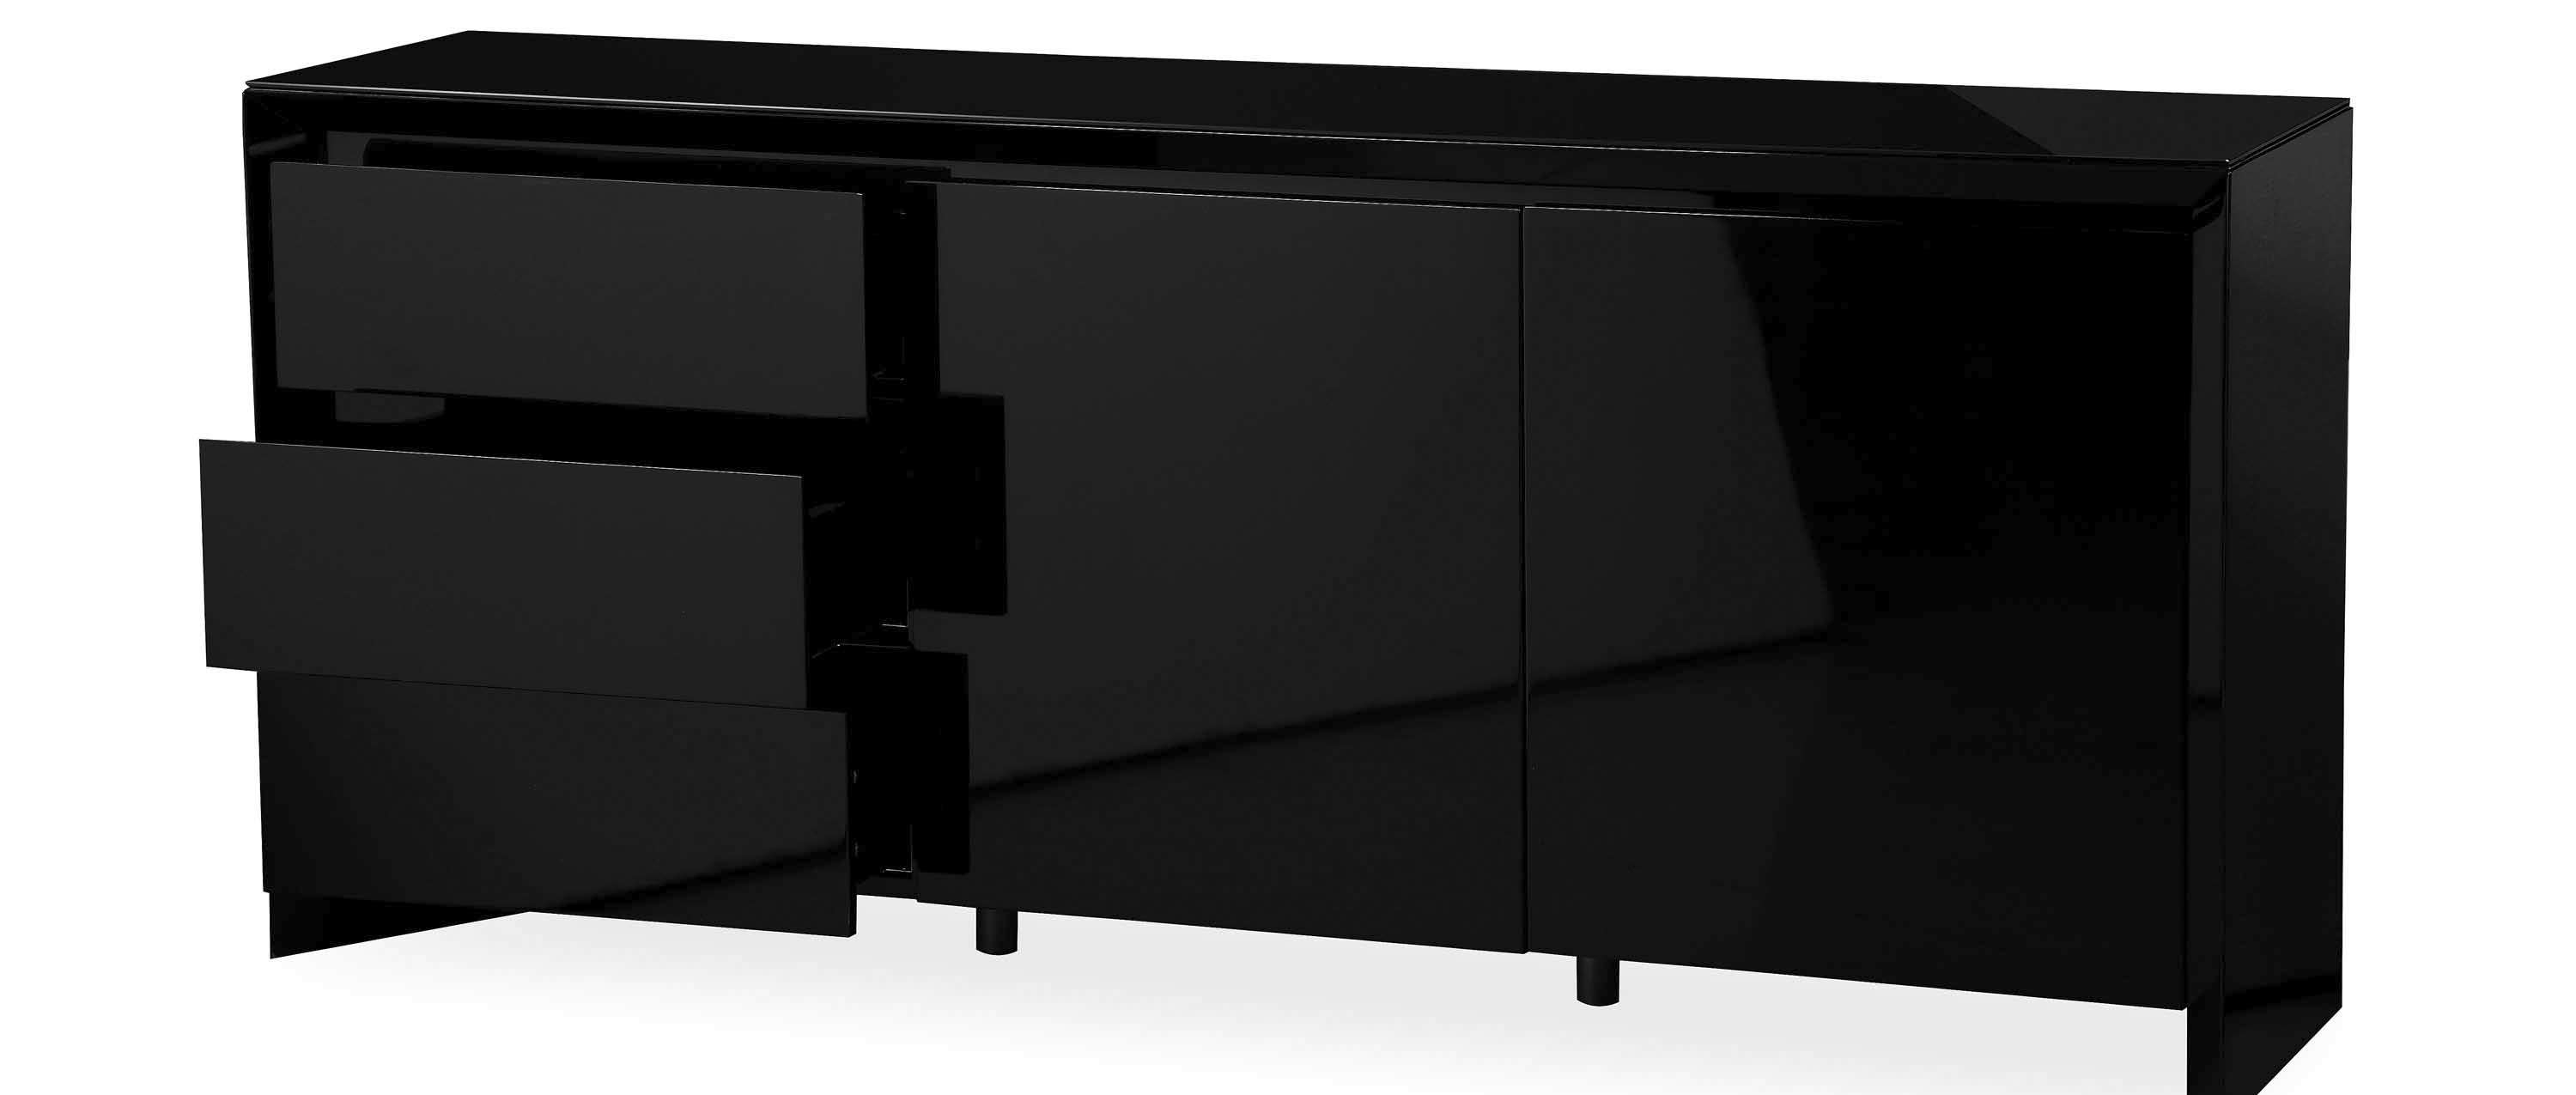 Soho – Extra Large Sideboard – Black High Gloss Pertaining To Black Sideboards (View 20 of 20)